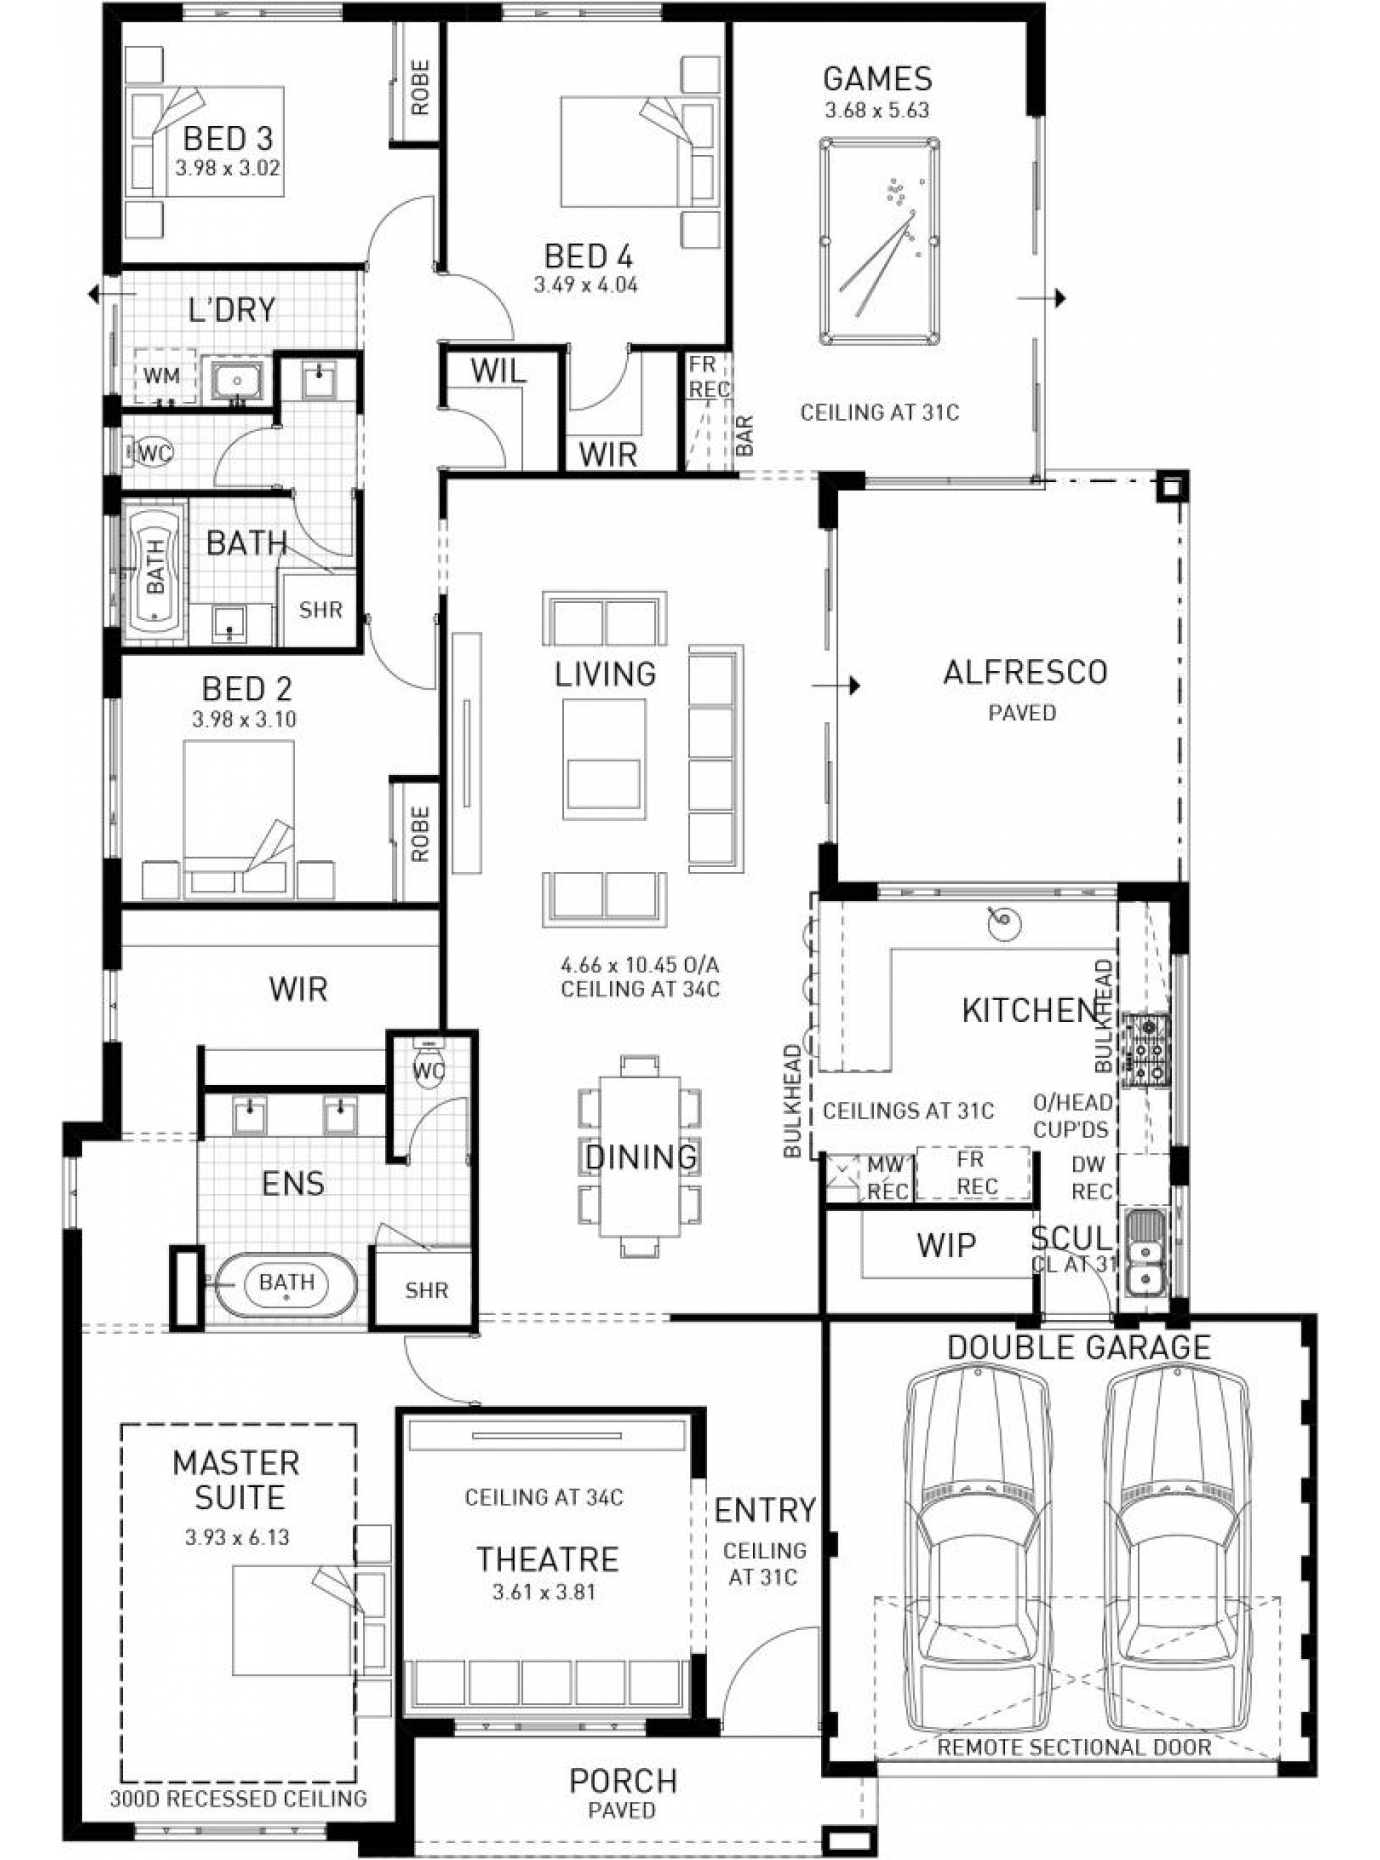 The Modena Display Home By Plunkett Homes In Chianti Waters Woodvale Perth Newhousing Com Au Home Design Floor Plans 4 Bedroom House Plans New House Plans